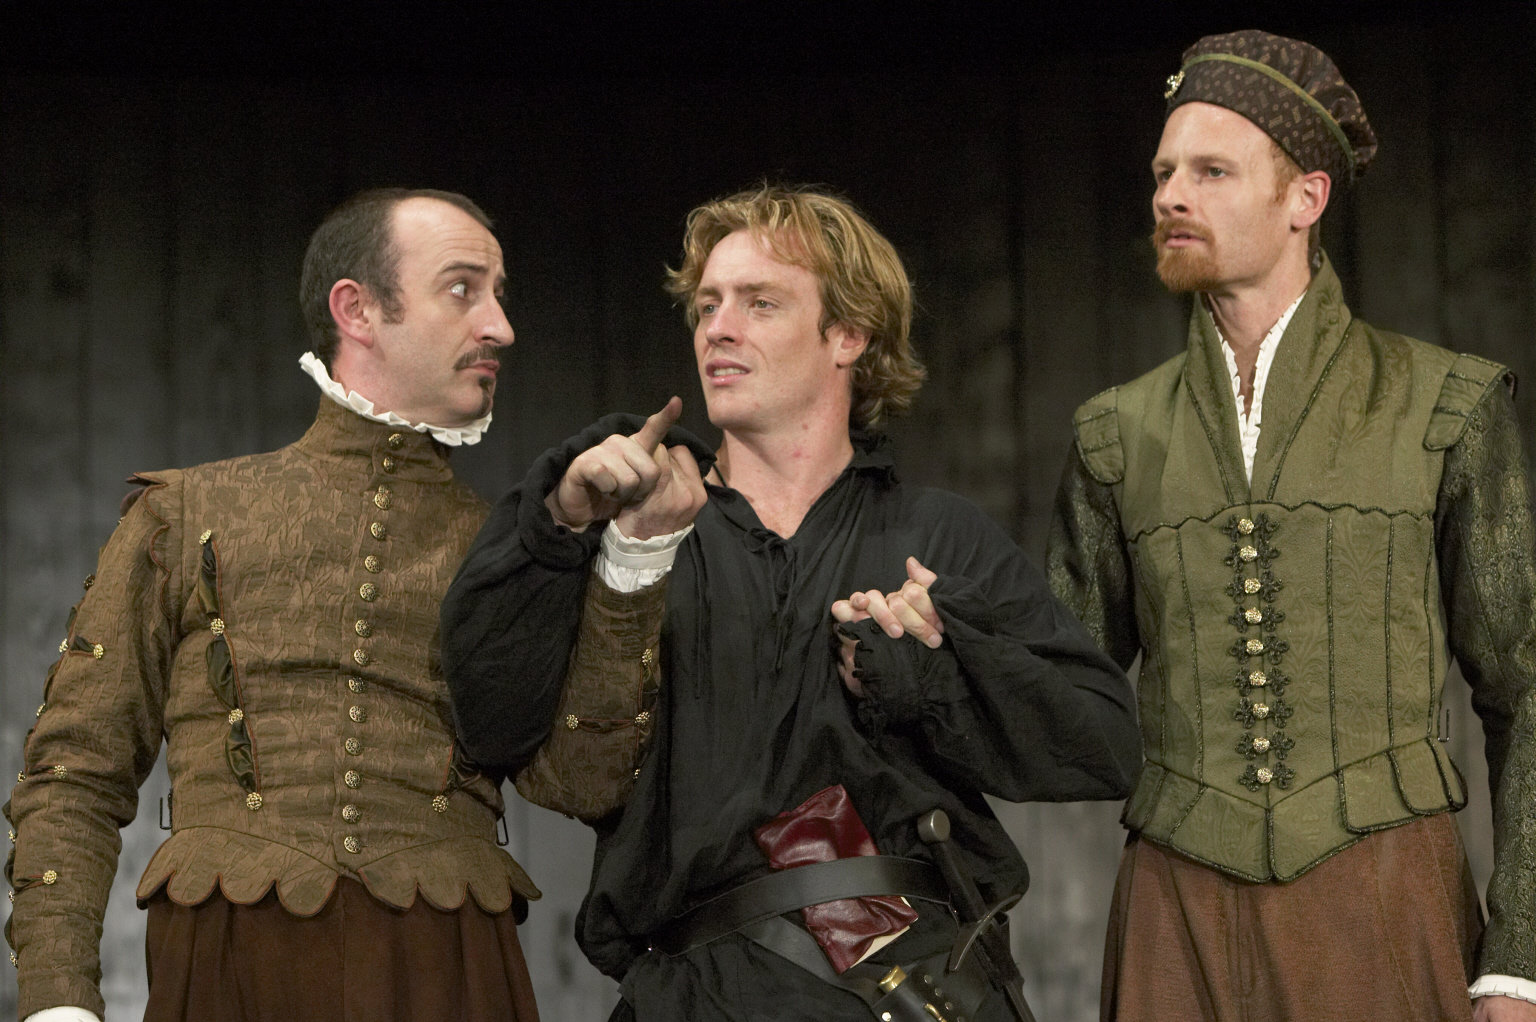 Hamlet between Rosencrantz and Guildenstern.